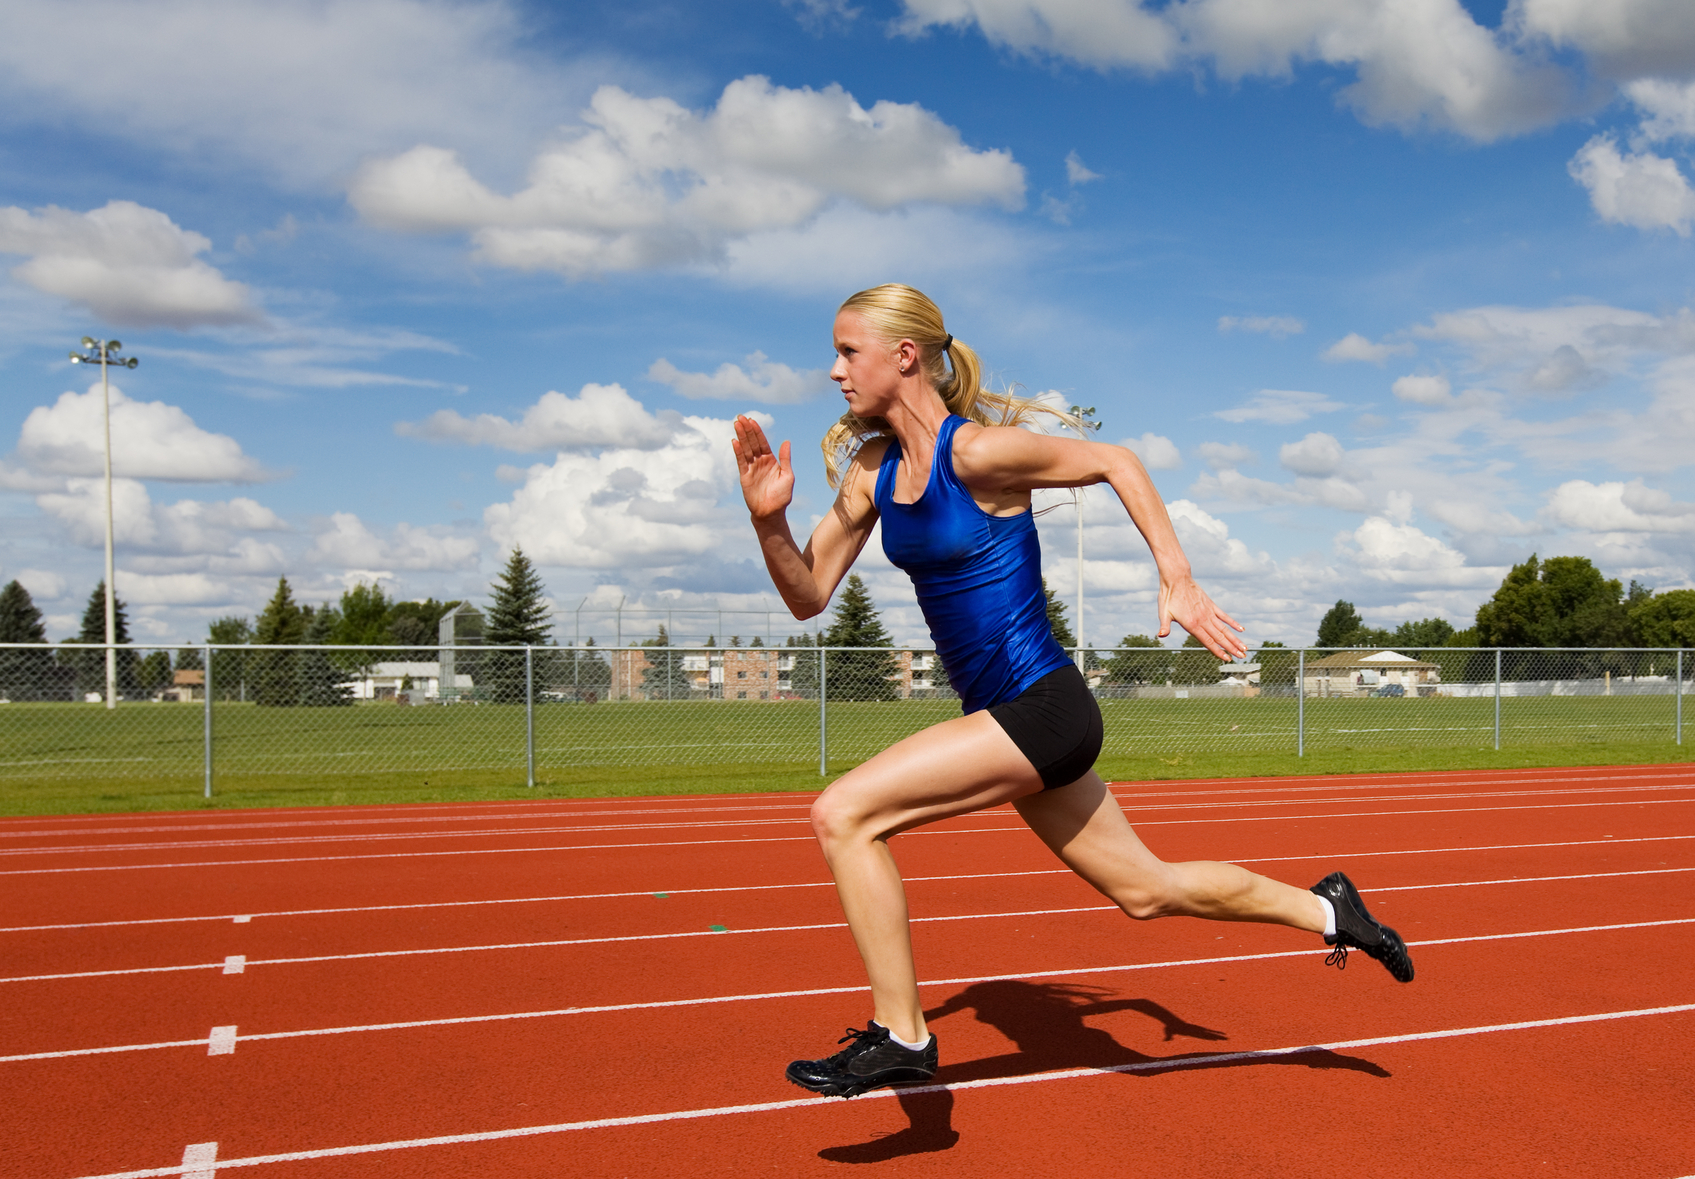 girl at track practice